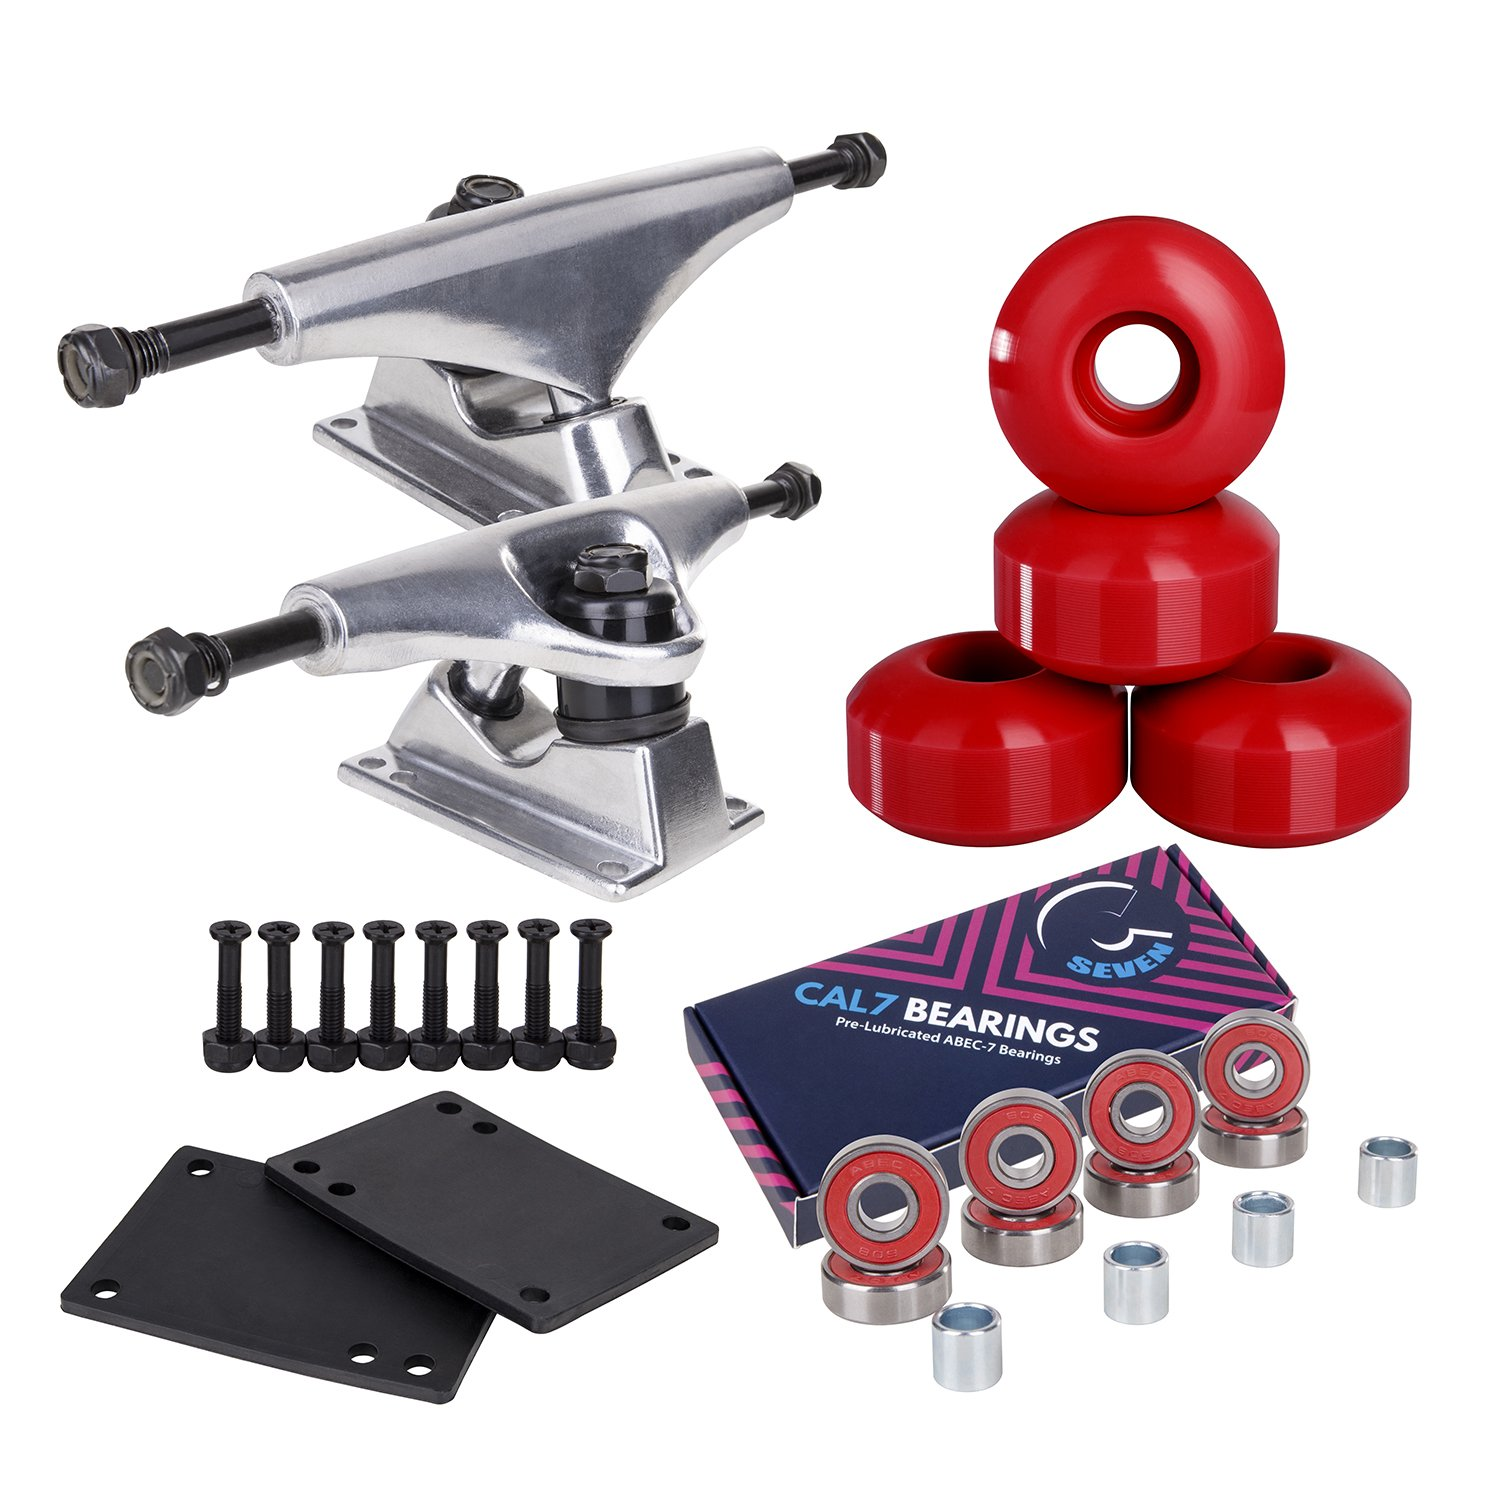 Cal 7 Skateboard Package Combo with 5 Inch / 129 Millimeter Trucks, 52mm 99A Wheels, Complete Set of Bearings and Steel Hardware (Silver Truck + Red Wheels) by Cal 7